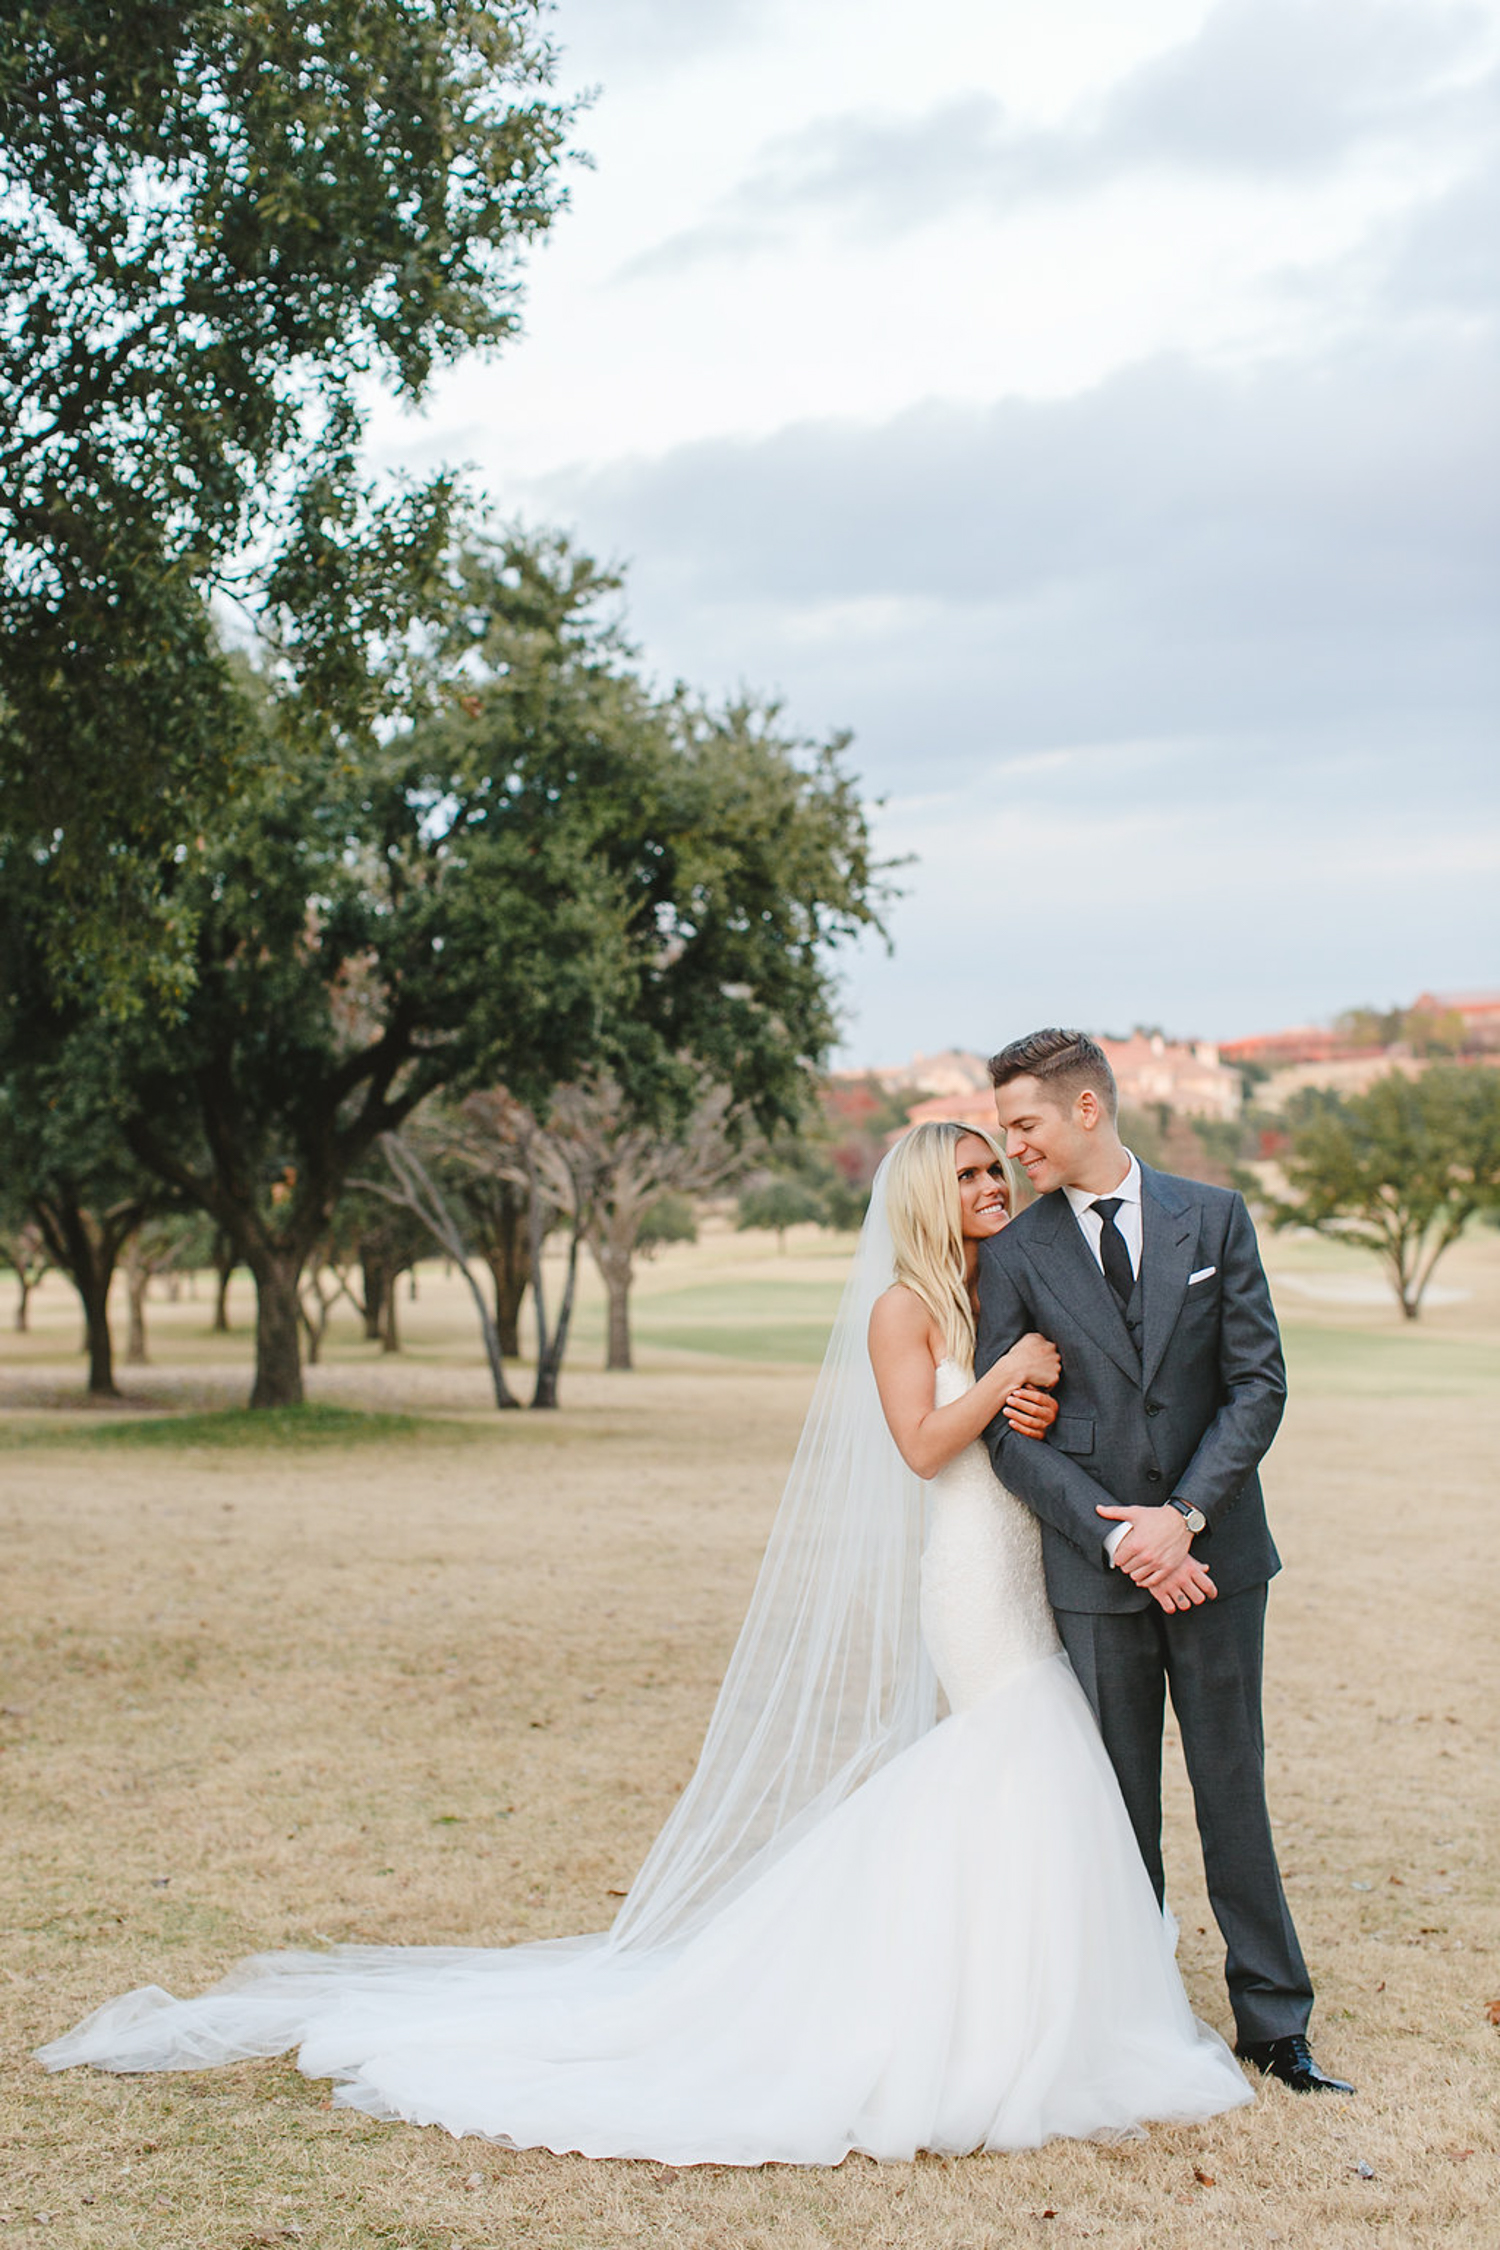 JasonKennedy.LaurenScruggs.DallasWedding29.jpg